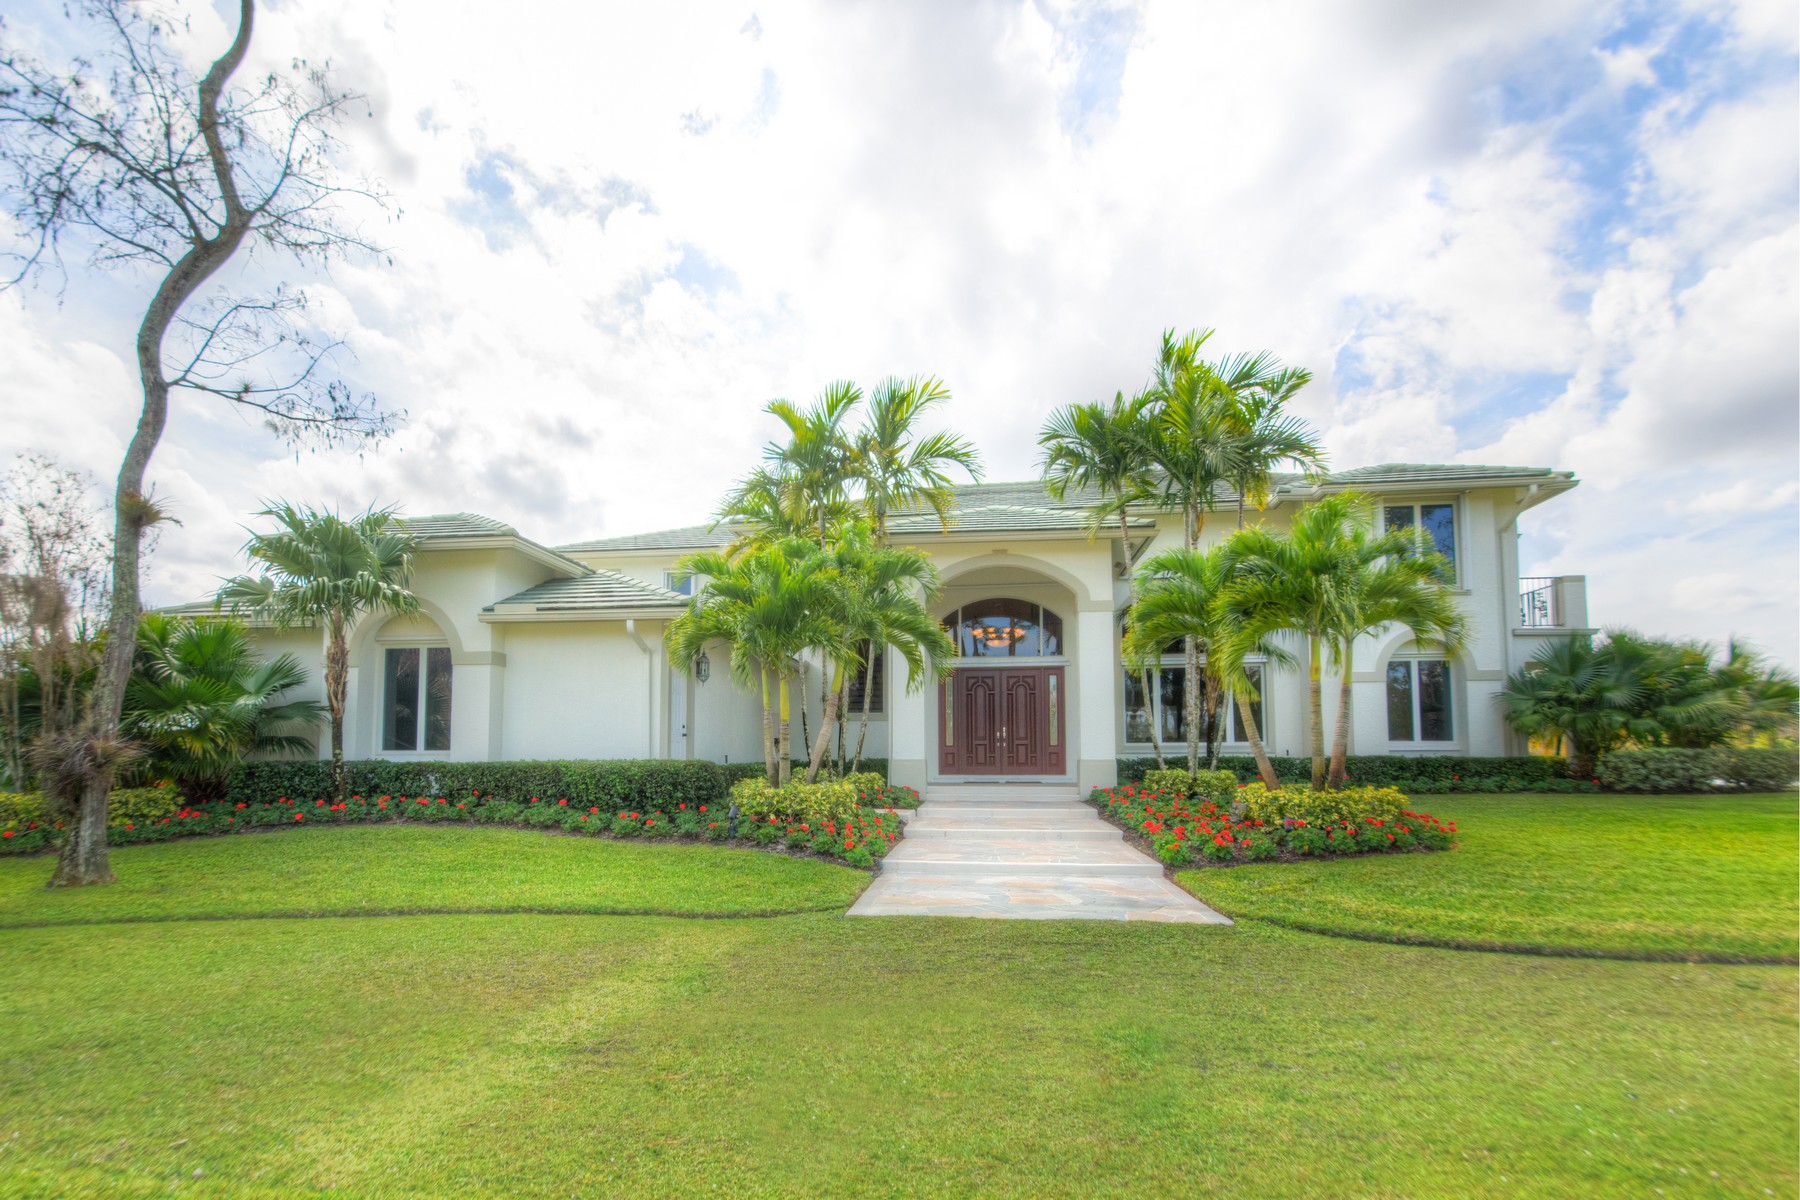 Casa Unifamiliar por un Venta en 11620 Bald Cypress Lane Homeland, Lake Worth, Florida, 33449 Estados Unidos